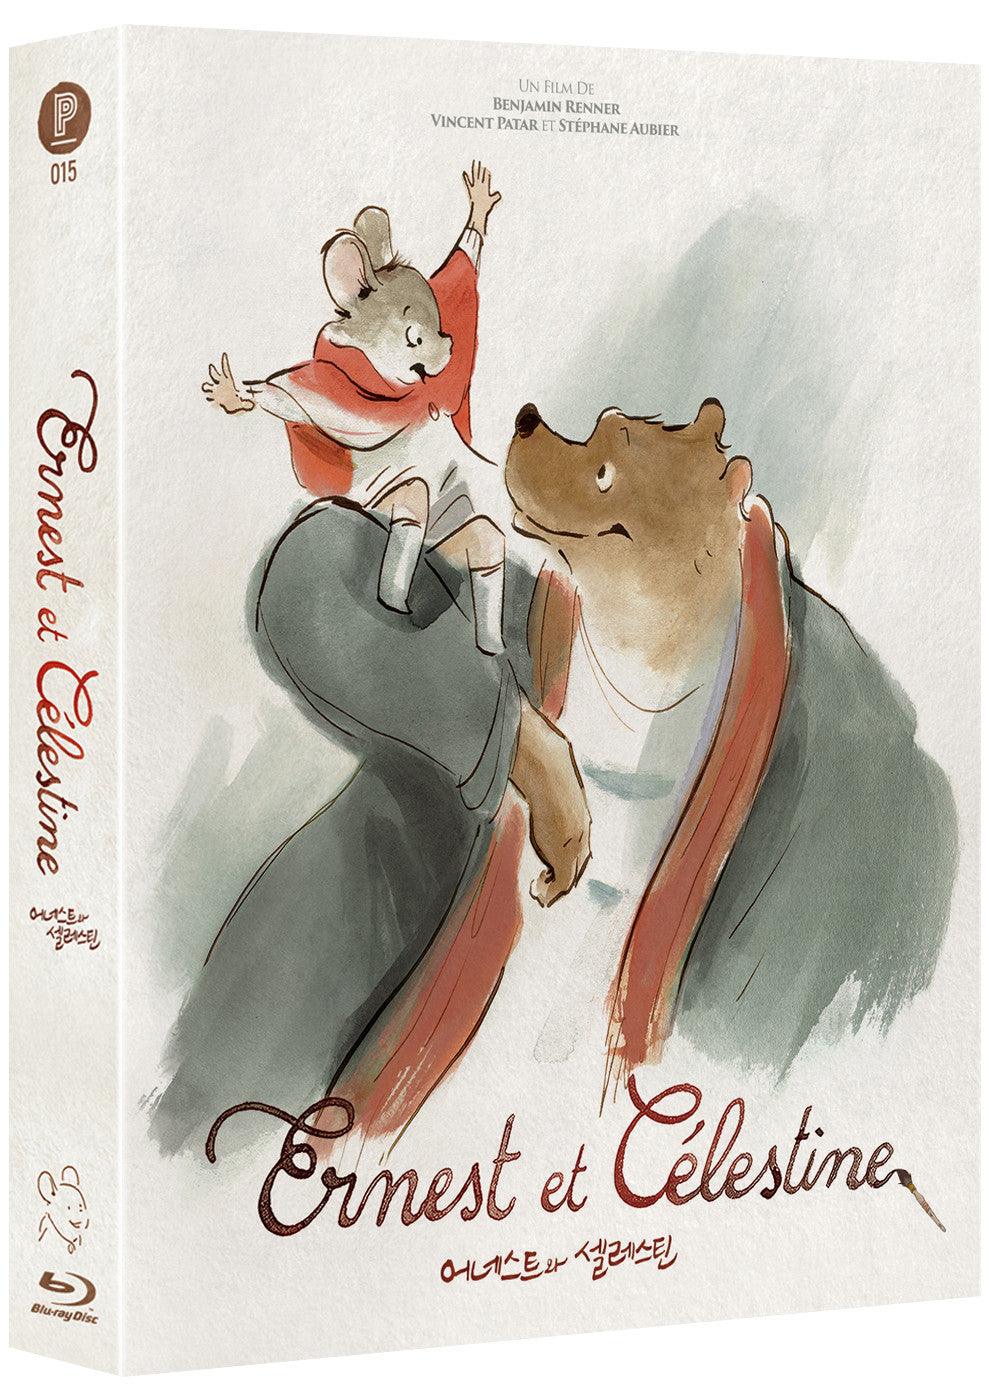 Ernest & Celestine (Design A) : LIMITED EDITION (PA015)